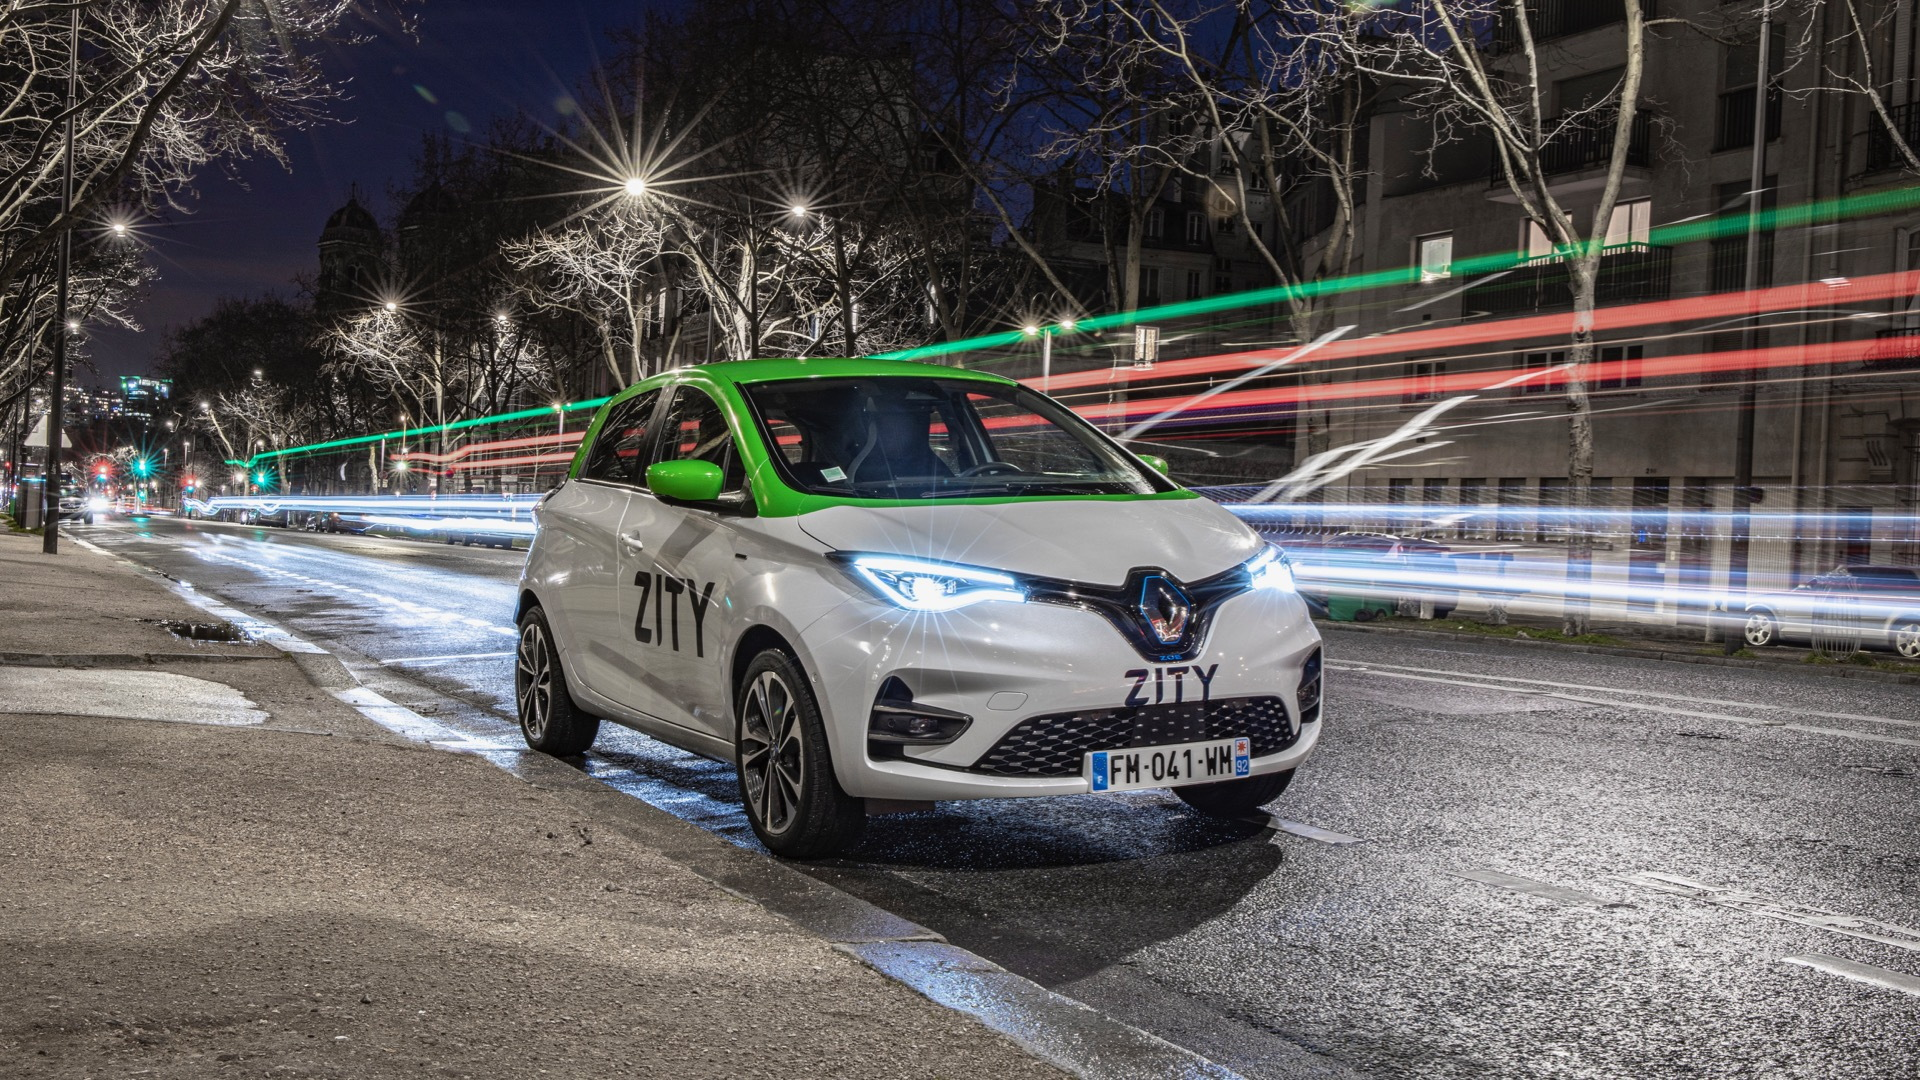 Renault Zity car-sharing service